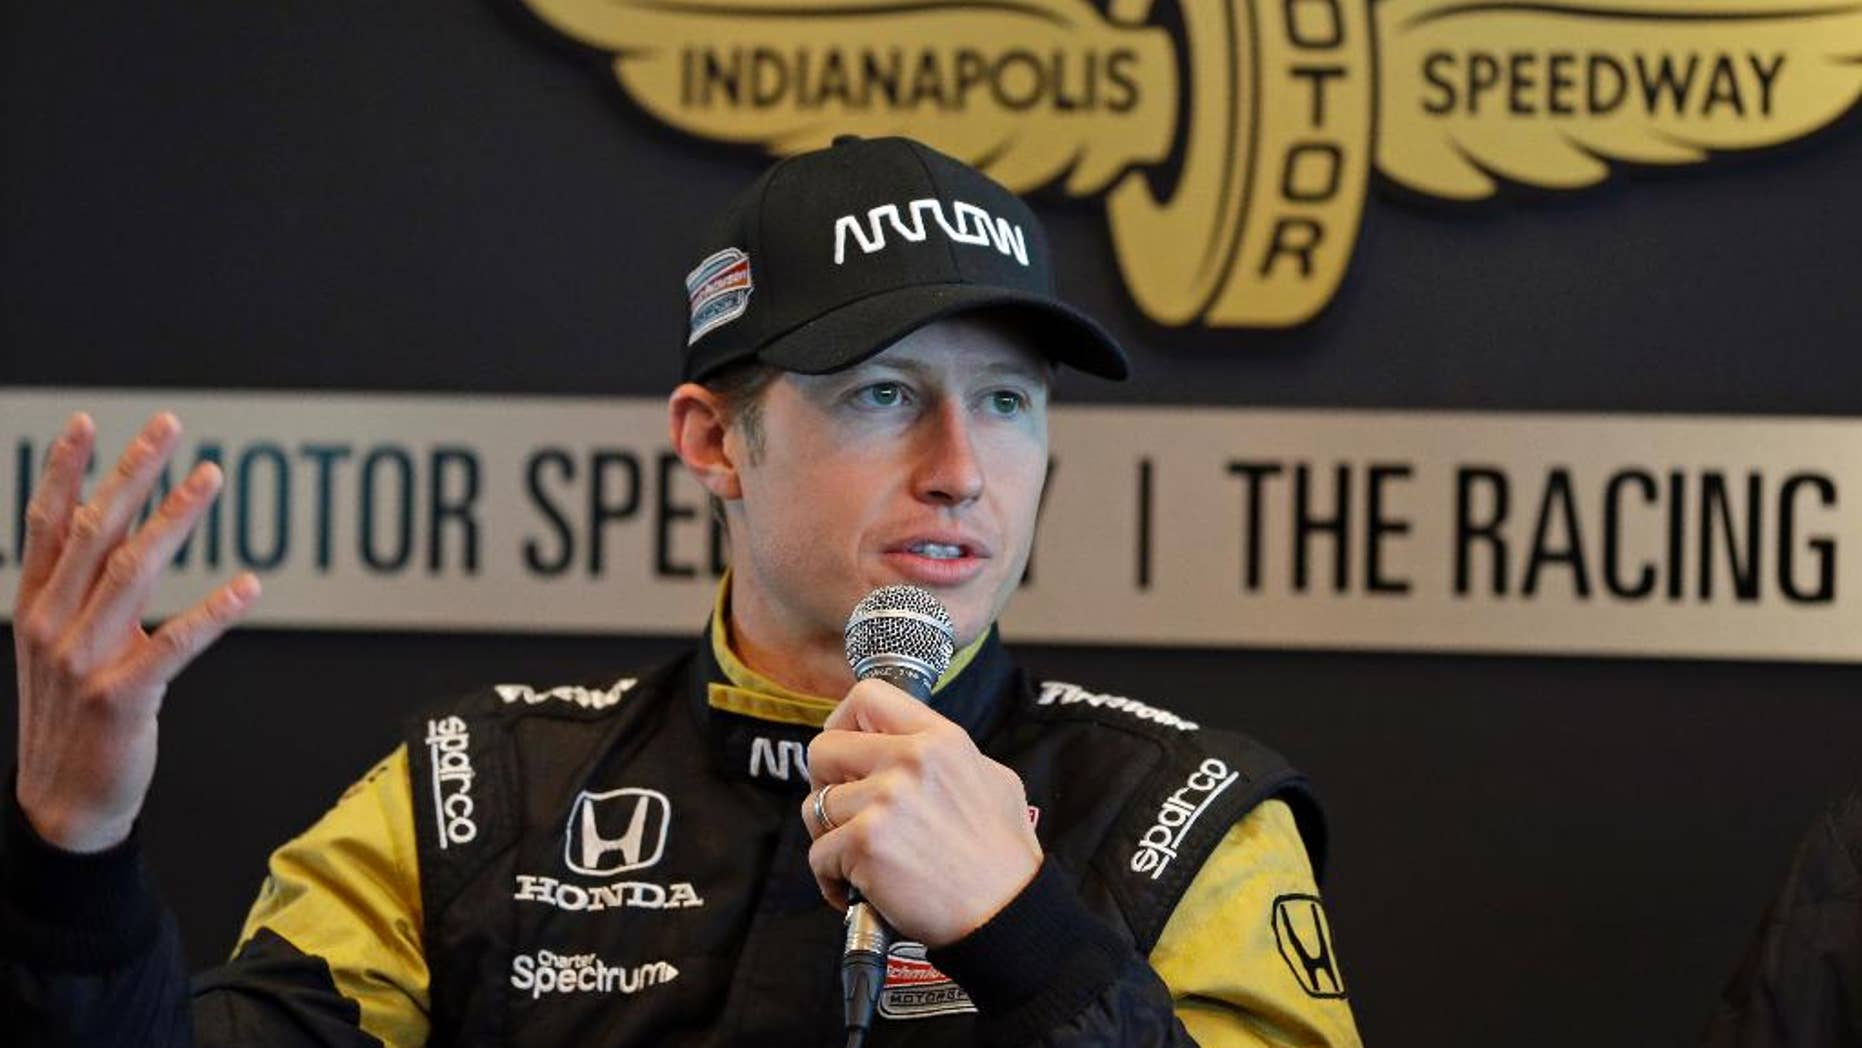 Ryan Briscoe, of Australia, answers a question about replacing James Hinchcliffe for the Indianapolis 500 auto race during a press conference at Indianapolis Motor Speedway in Indianapolis, Thursday, May 21, 2015. Hinchcliffe was injured in a crash on Monday. (AP Photo/Michael Conroy)